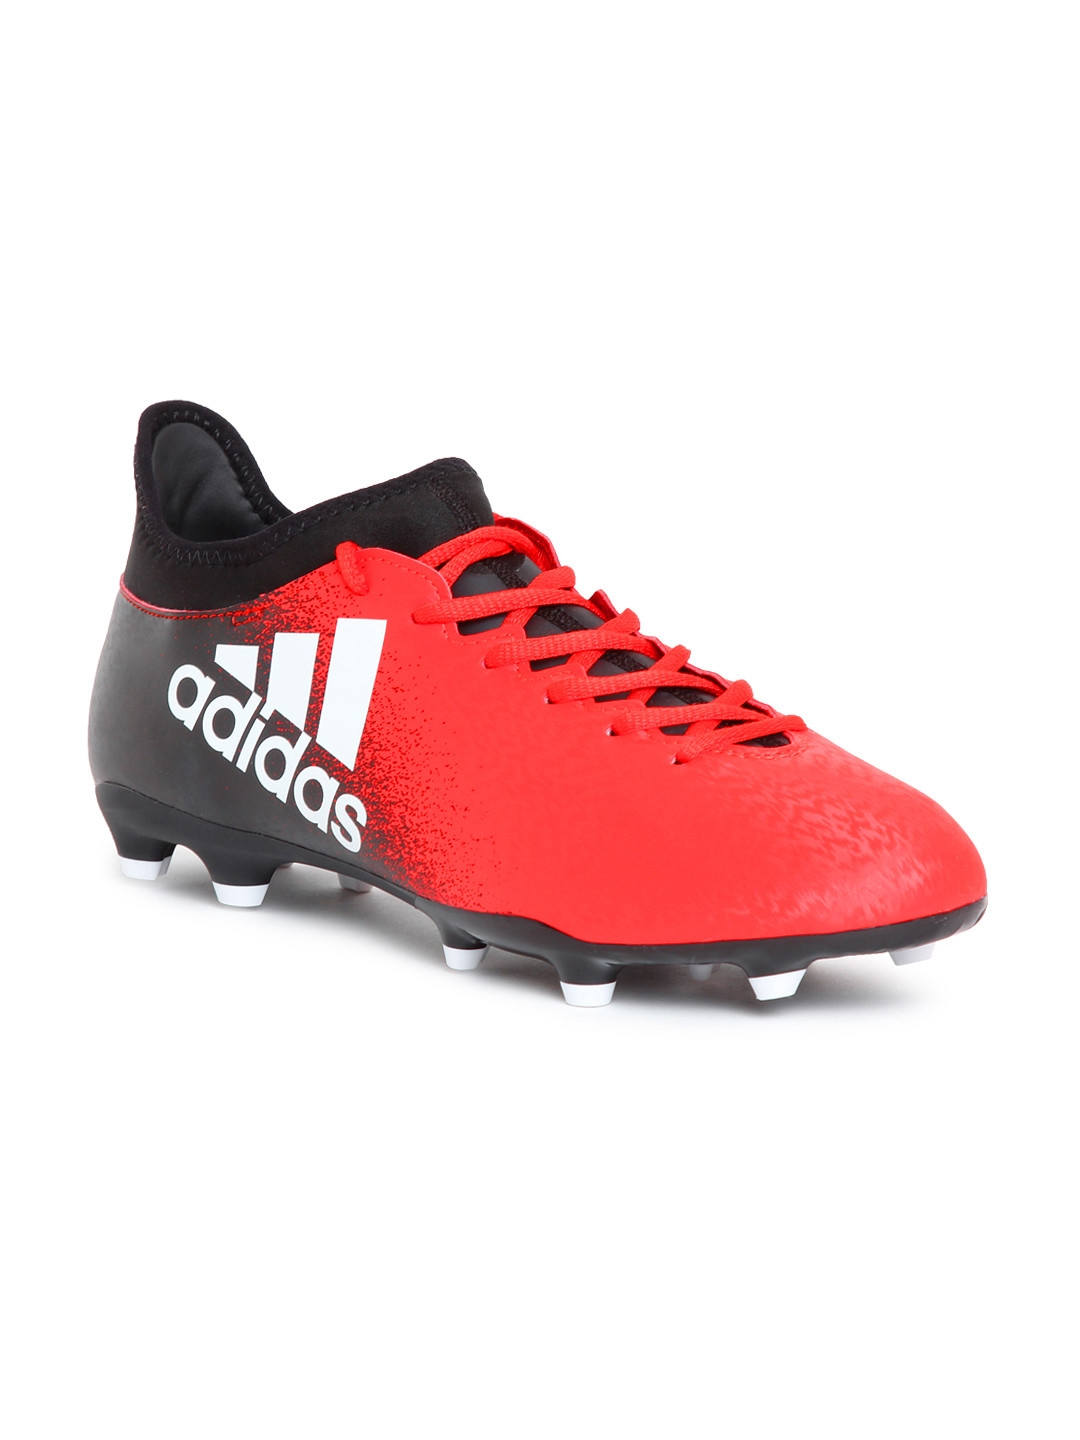 igual provocar Semicírculo  Buy ADIDAS Men Red & Black X 16.3 FG Football Shoes - Sports Shoes for Men  1775250 | Myntra